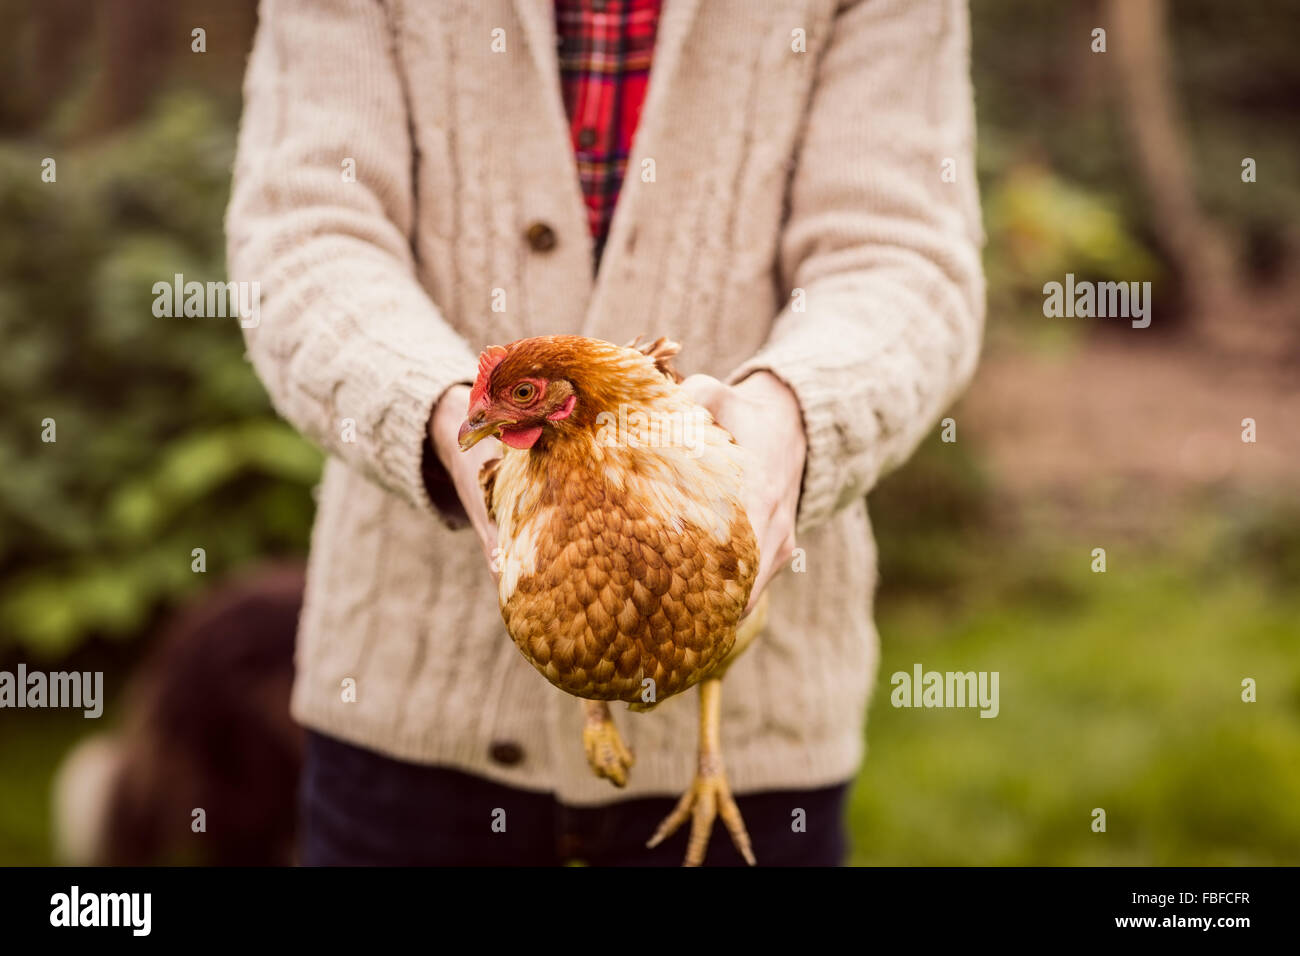 Man holding and showing chicken - Stock Image